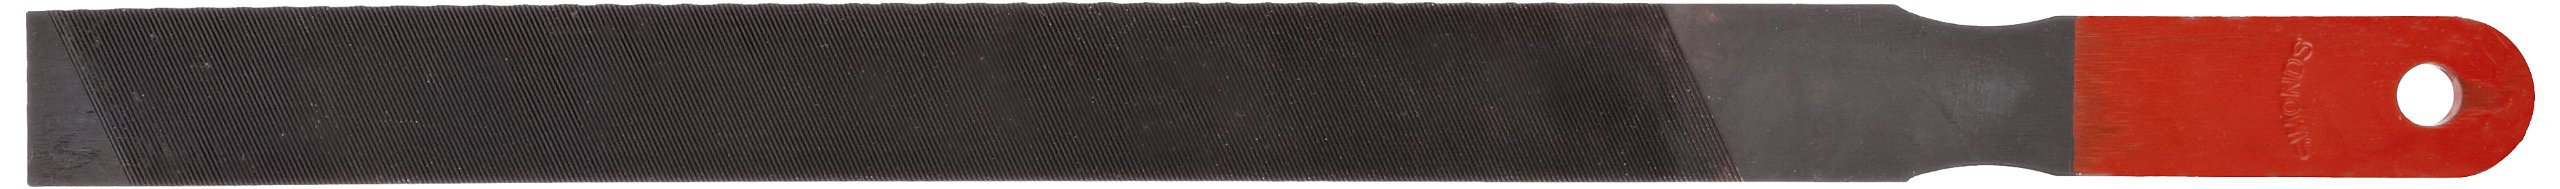 Simonds Mill Paddle Hand File with Handle, American Pattern, Single Cut, Rectangular, Black Oxide Coating, Coarse, 10'' Length, 31/32'' Width, 3/16'' Thickness